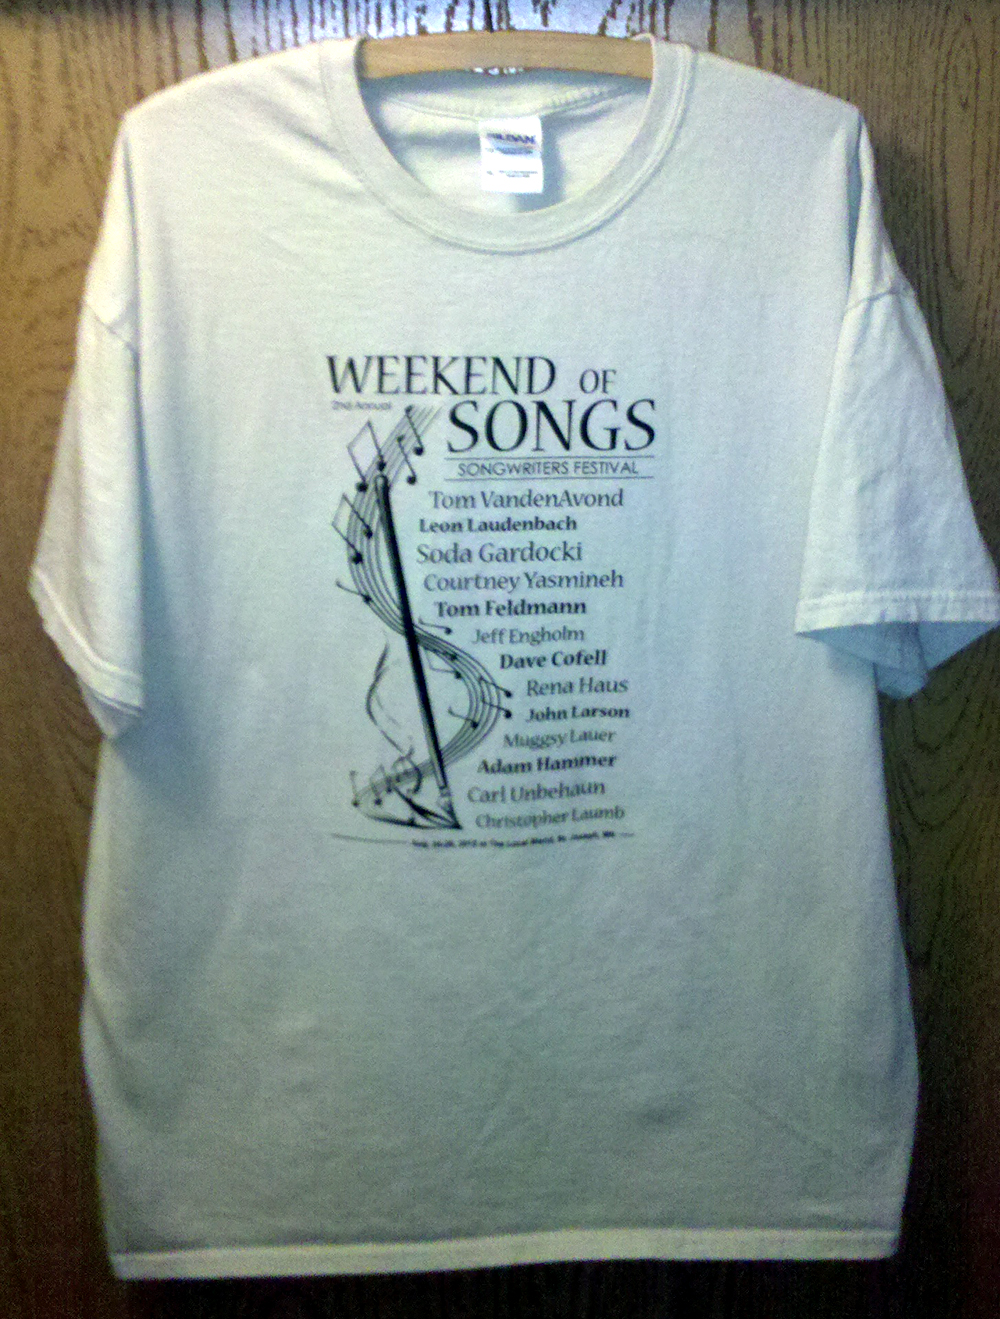 Custom t shirts are what fans want at concerts music for Custom t shirts under 10